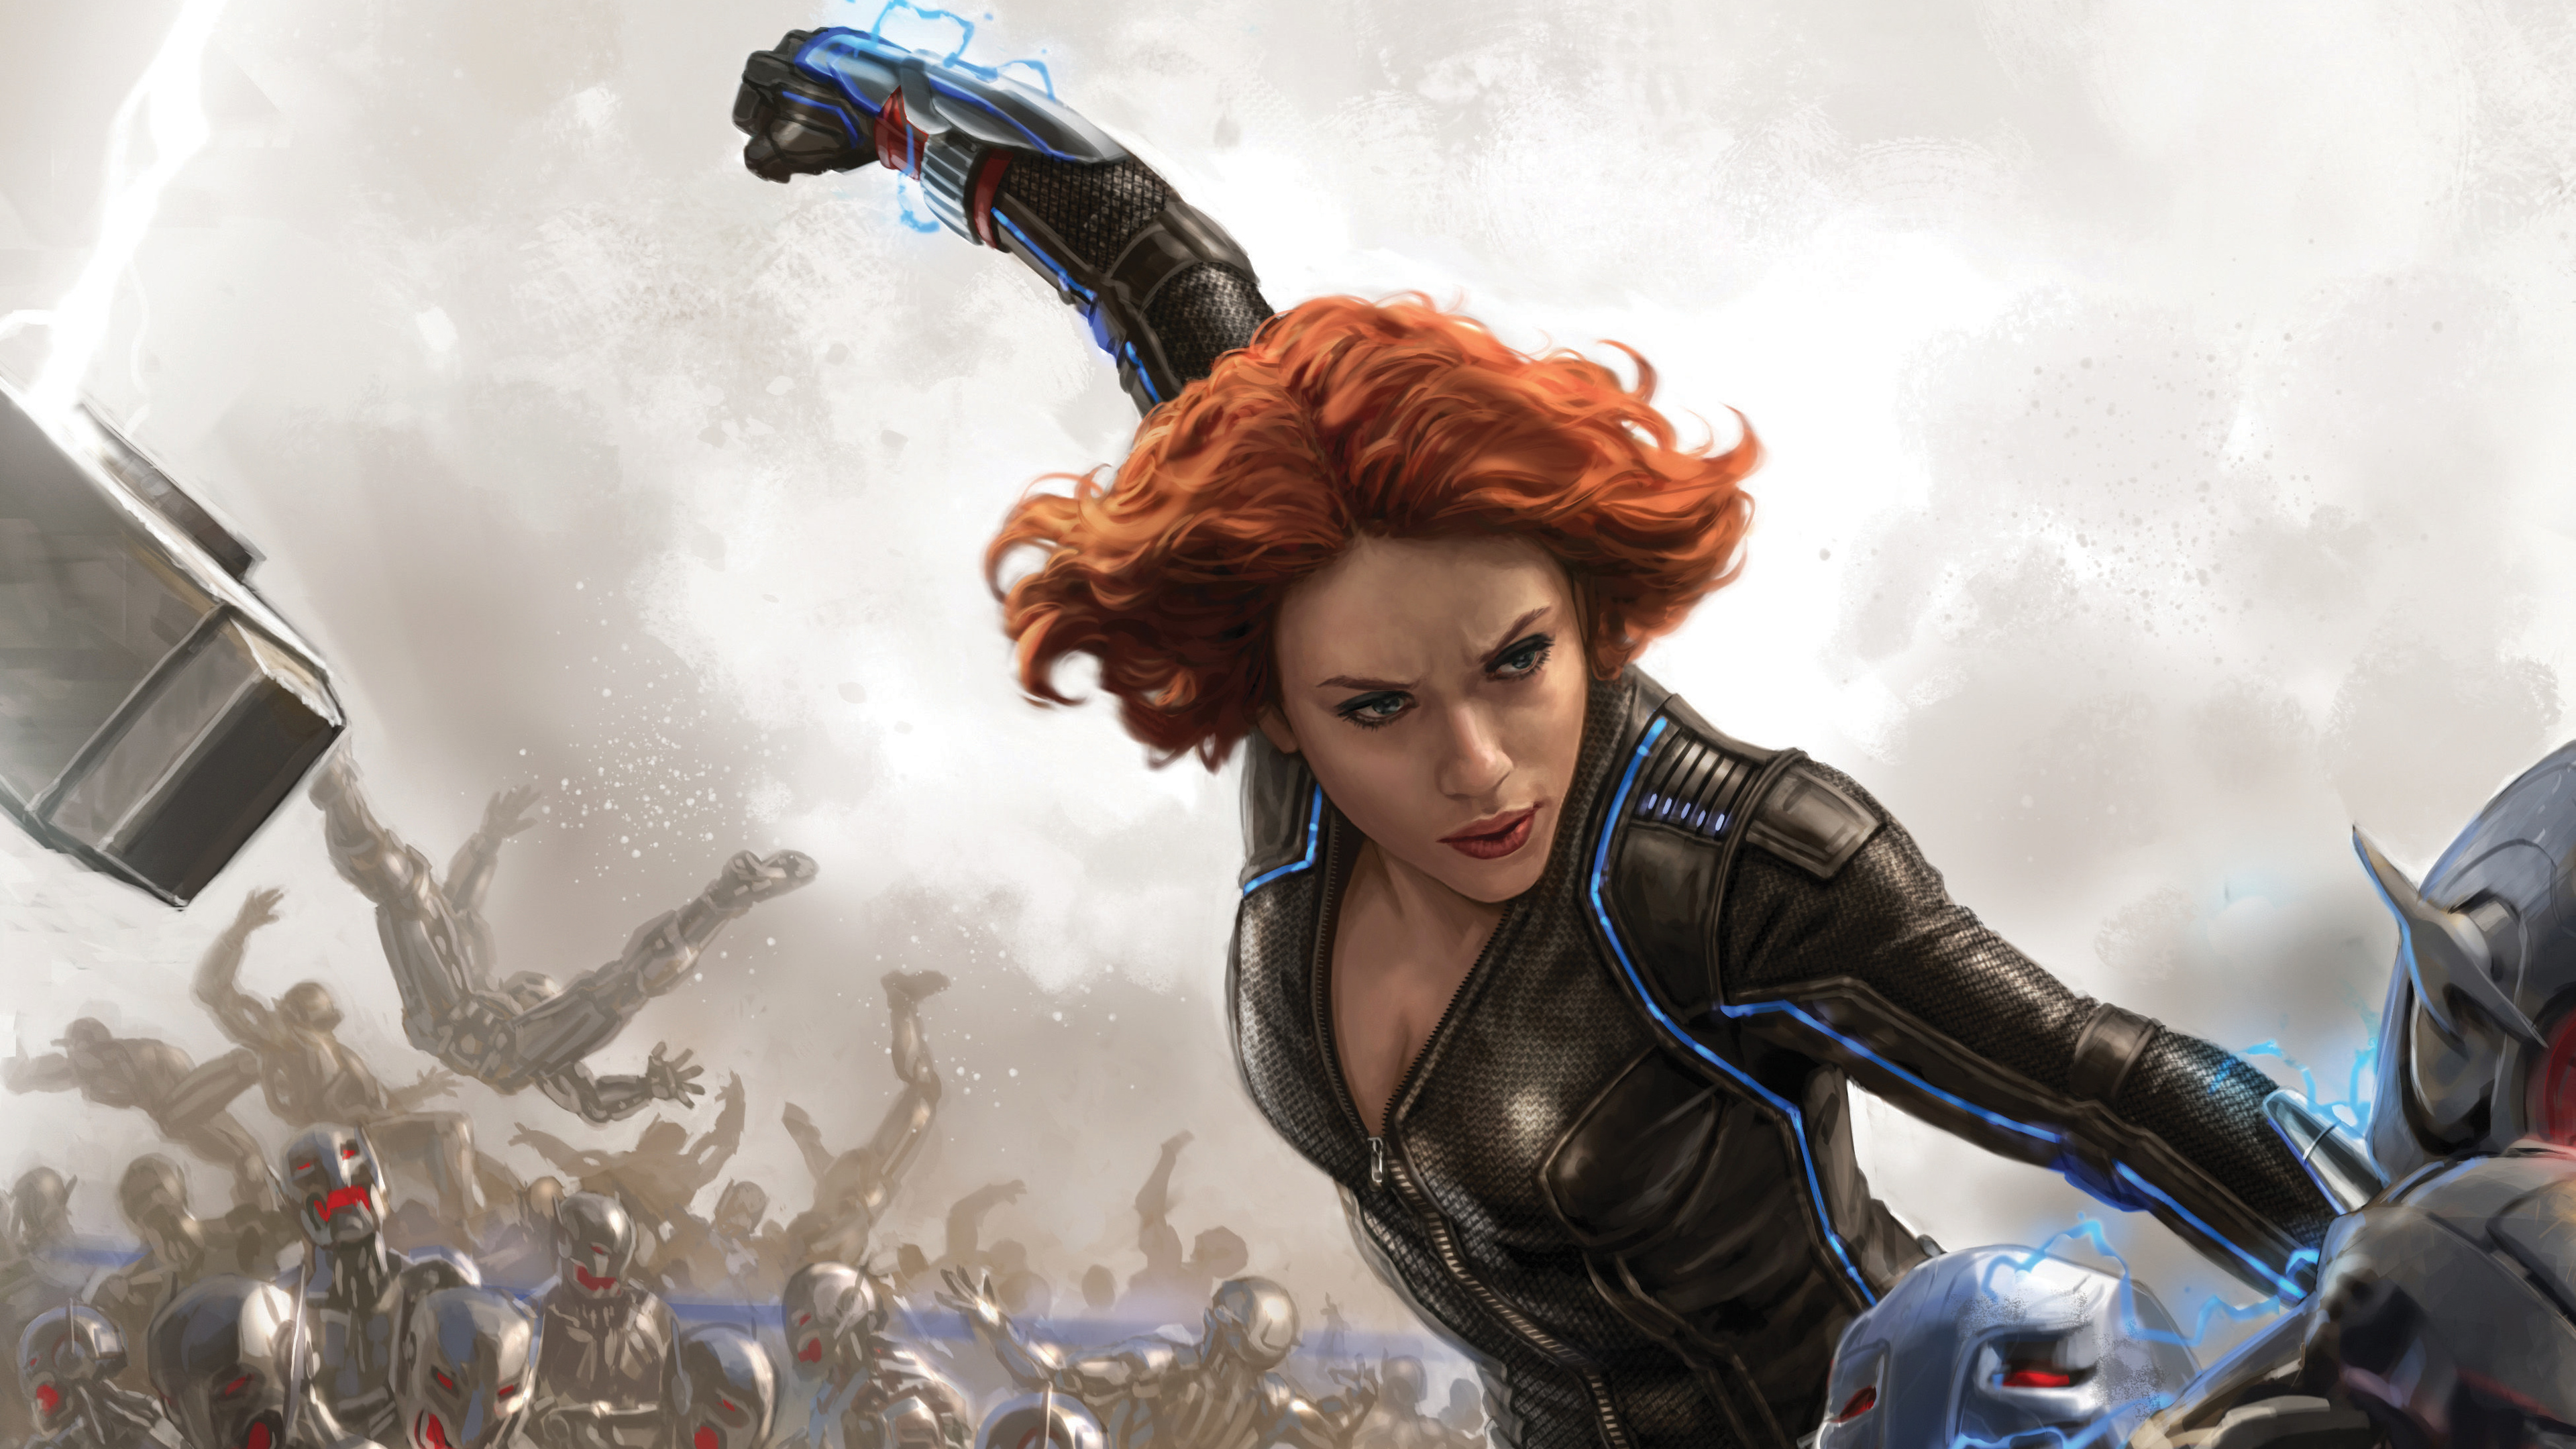 Wallpaper 4k Black Widow Fan Art 4k 4k Wallpapers Artist